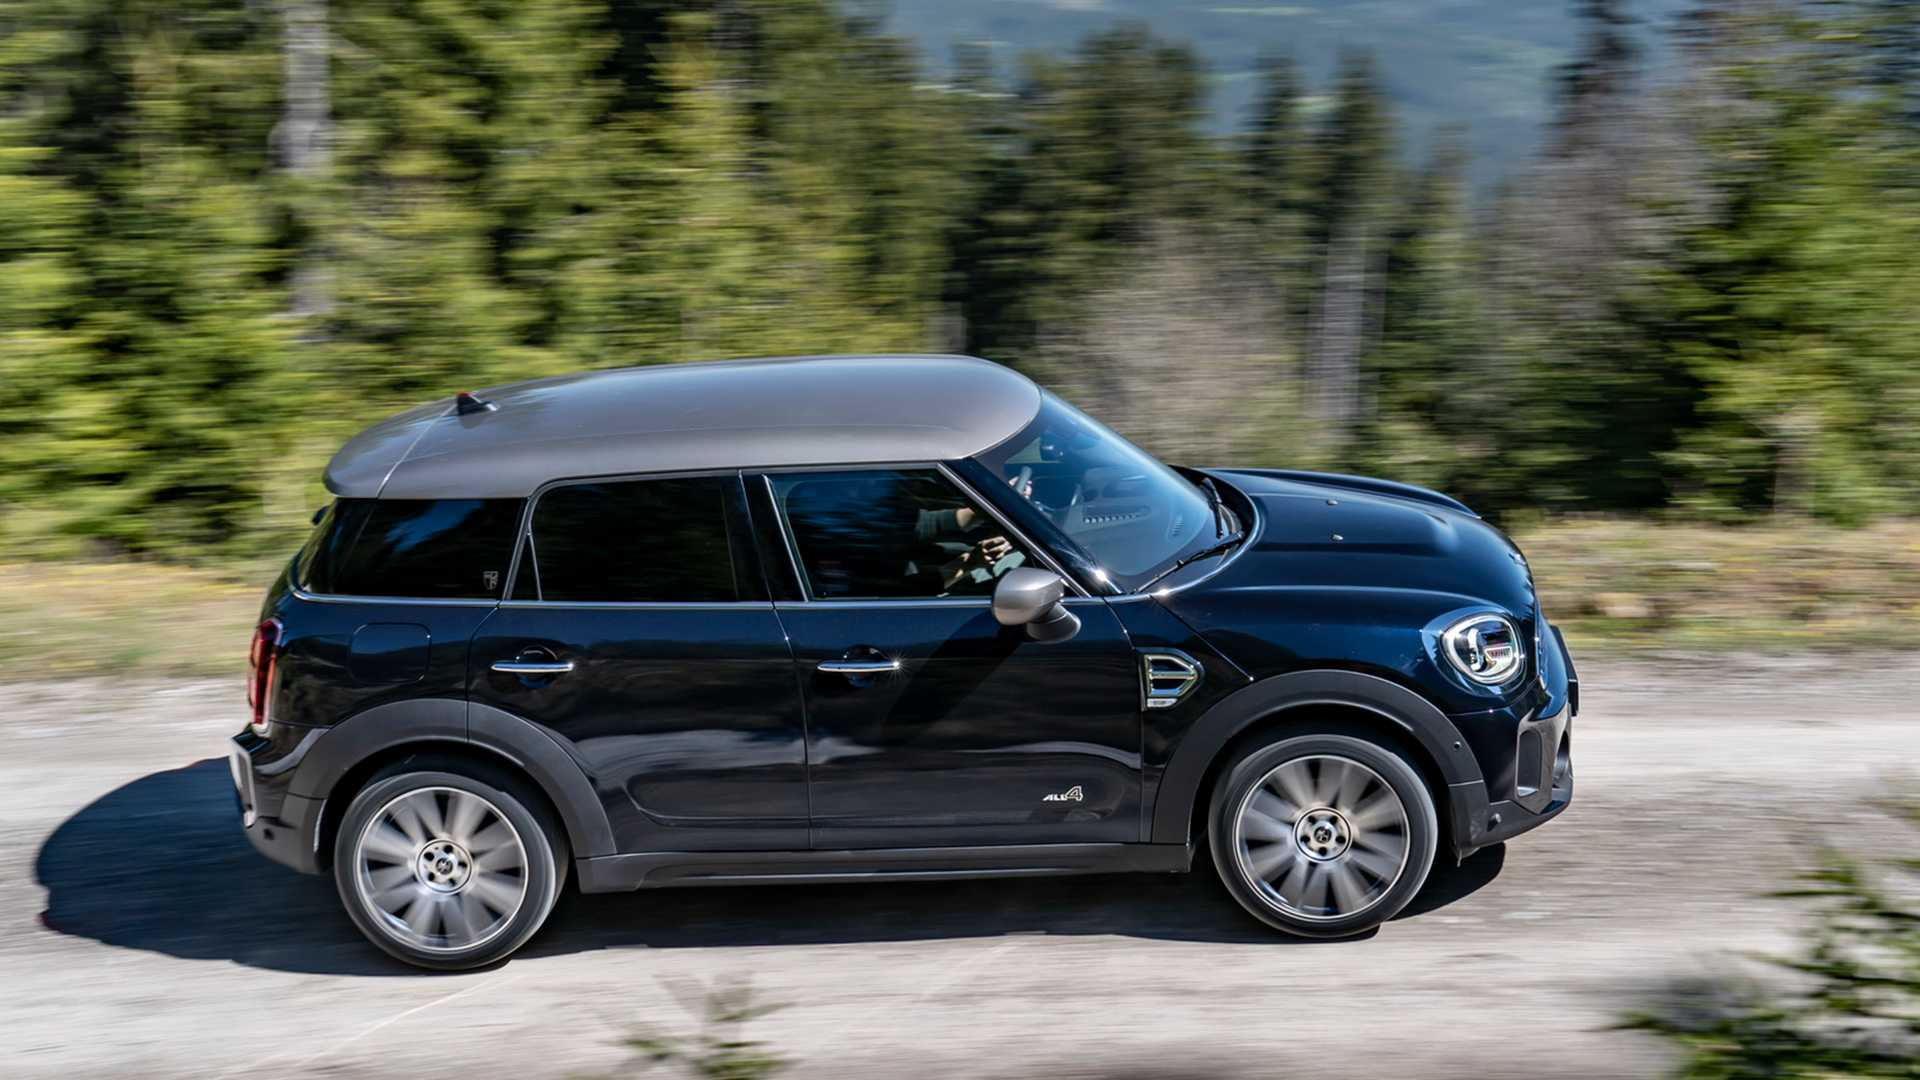 mini-cooper-countryman-all4-2020-4